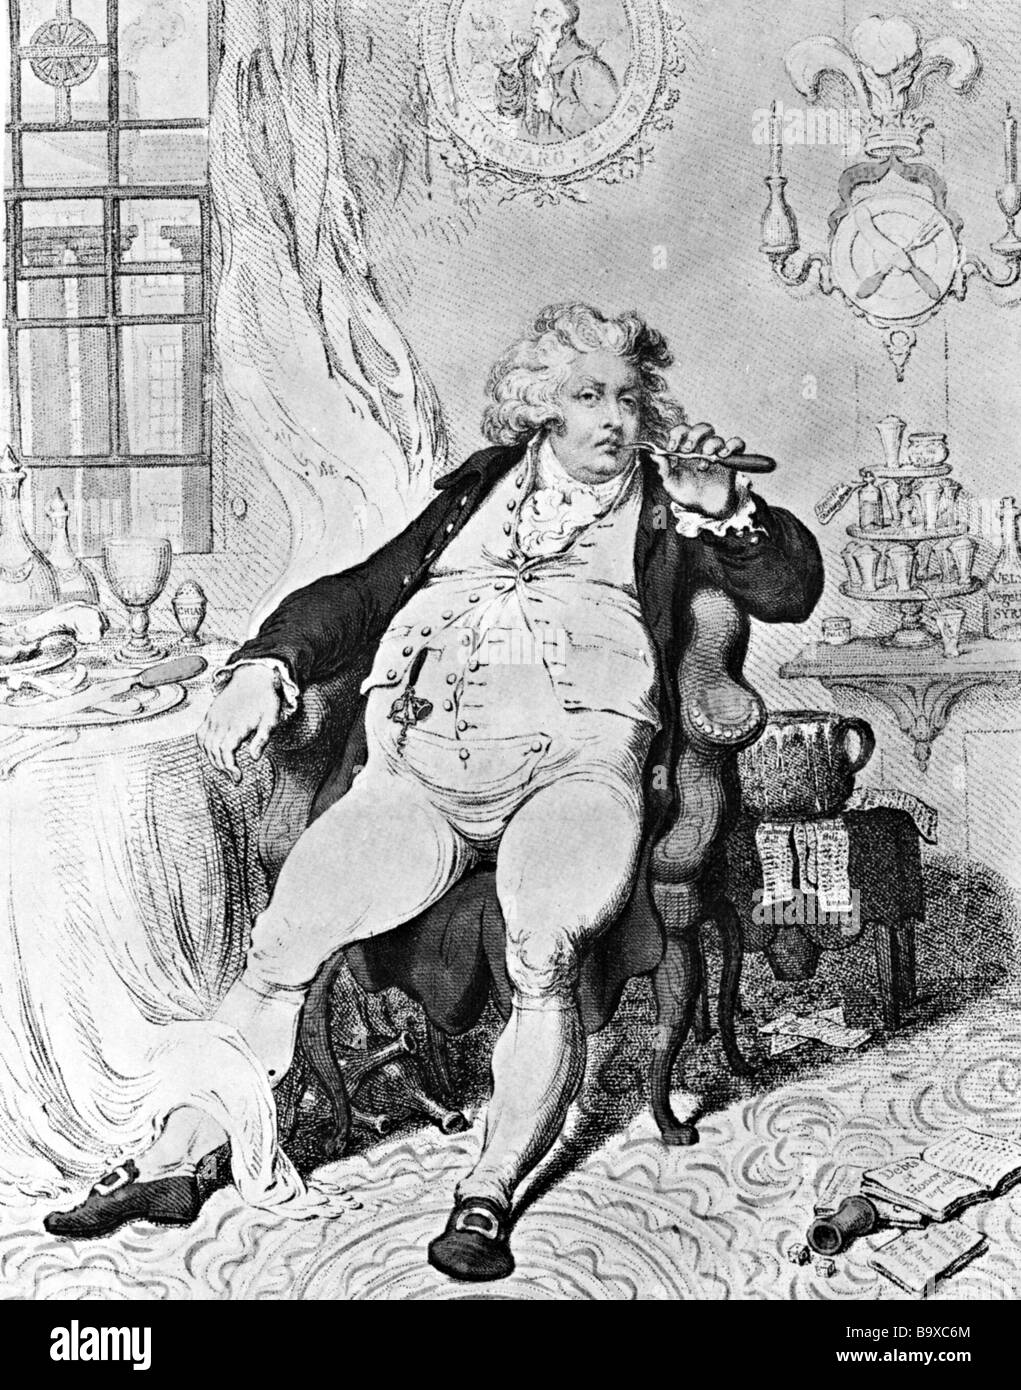 PRINCE REGENT as caricatured by Gillray in 1796 - Stock Image